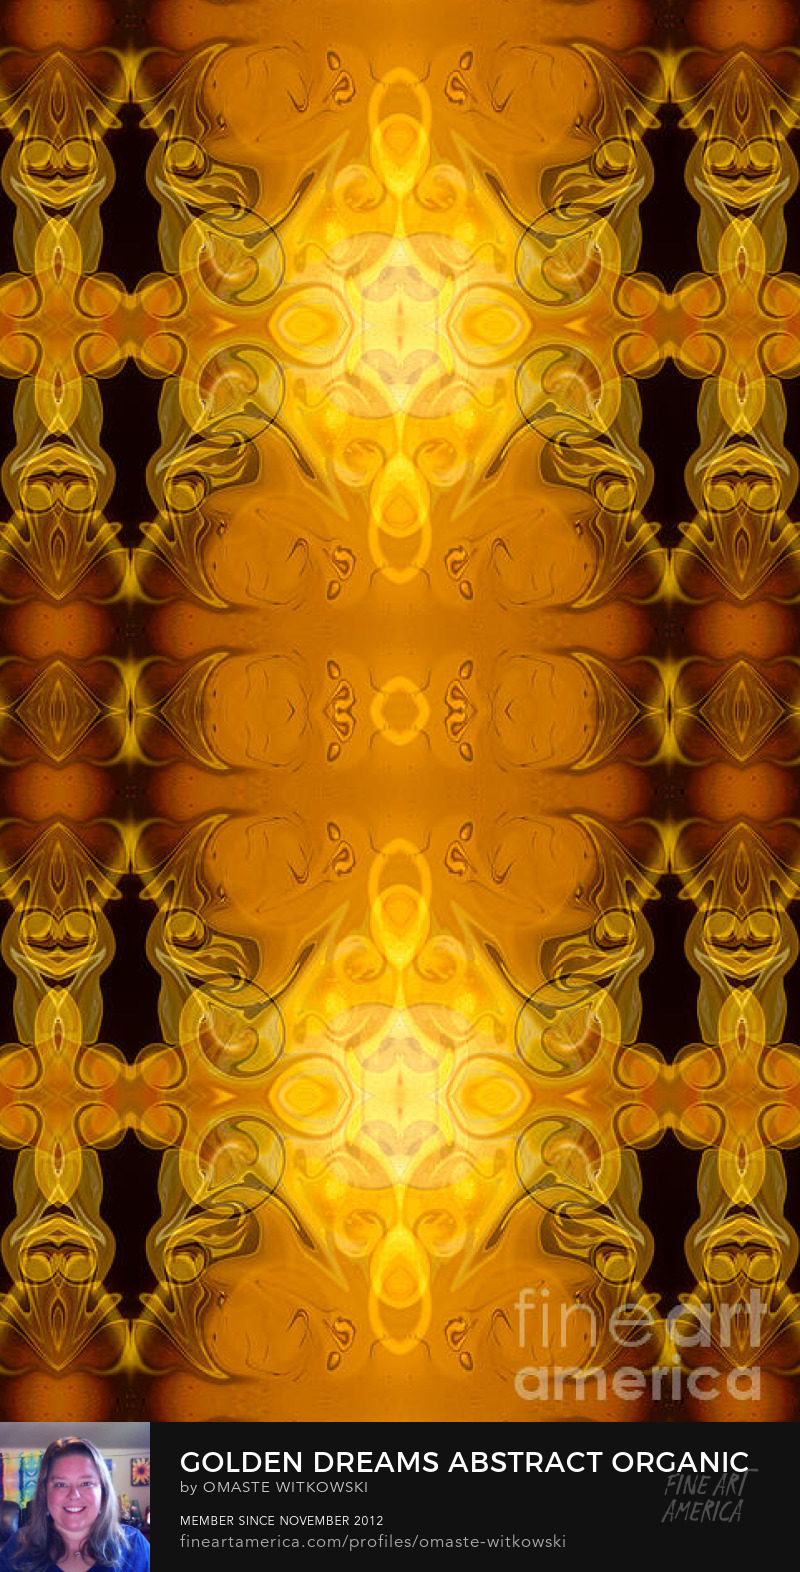 Golden Dreams Abstract Organic Bliss Art Prints